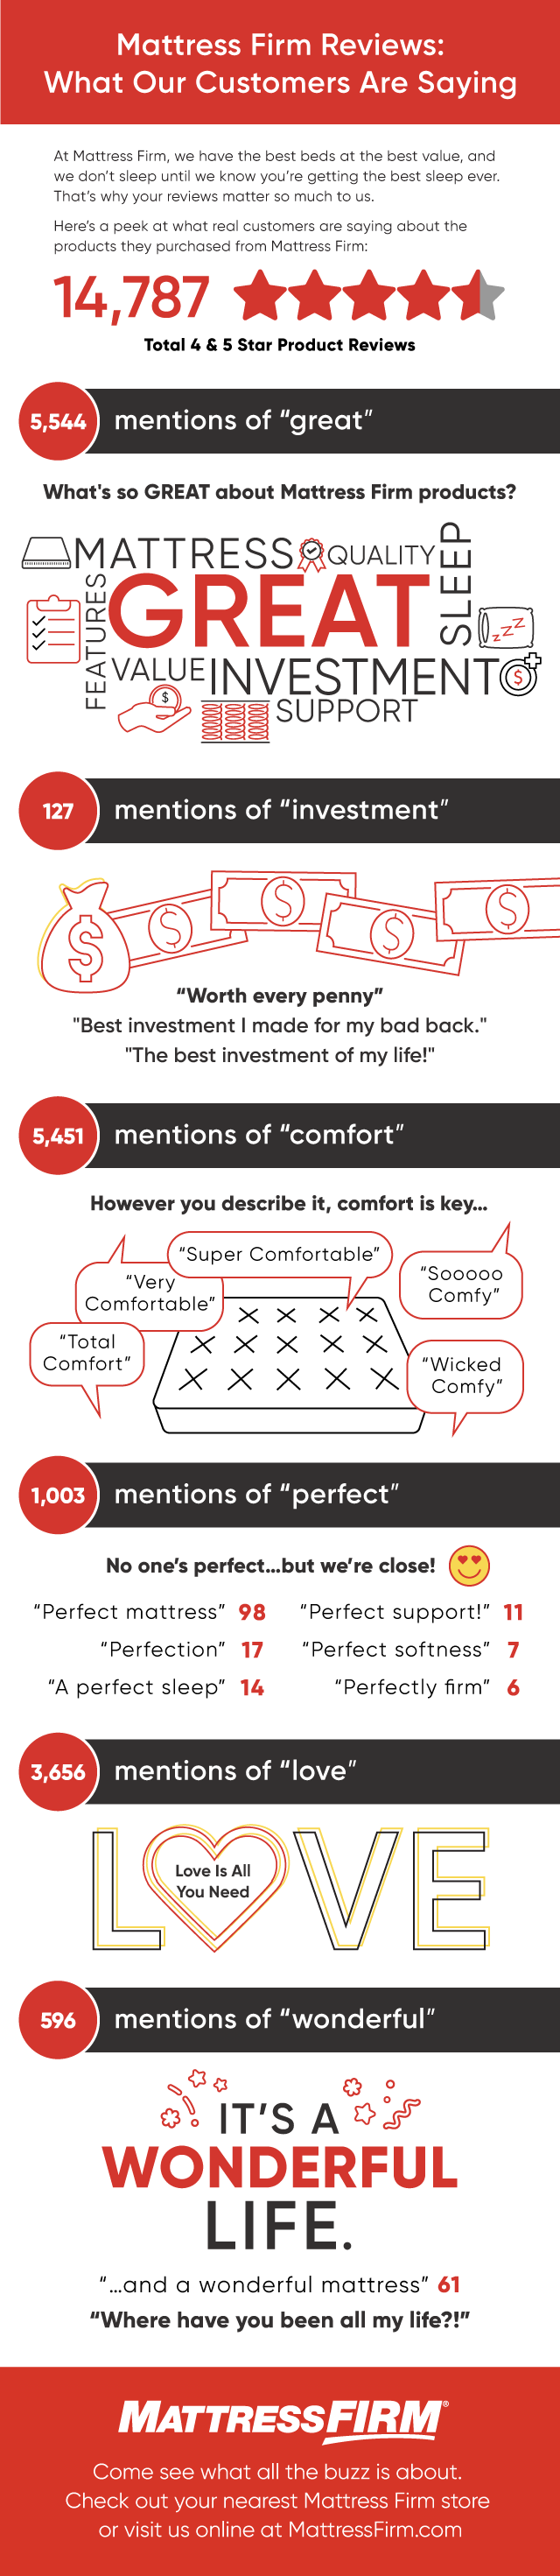 Mattress Brand Reviews >> Mattress Reviews What Real People Are Saying About Our Mattresses